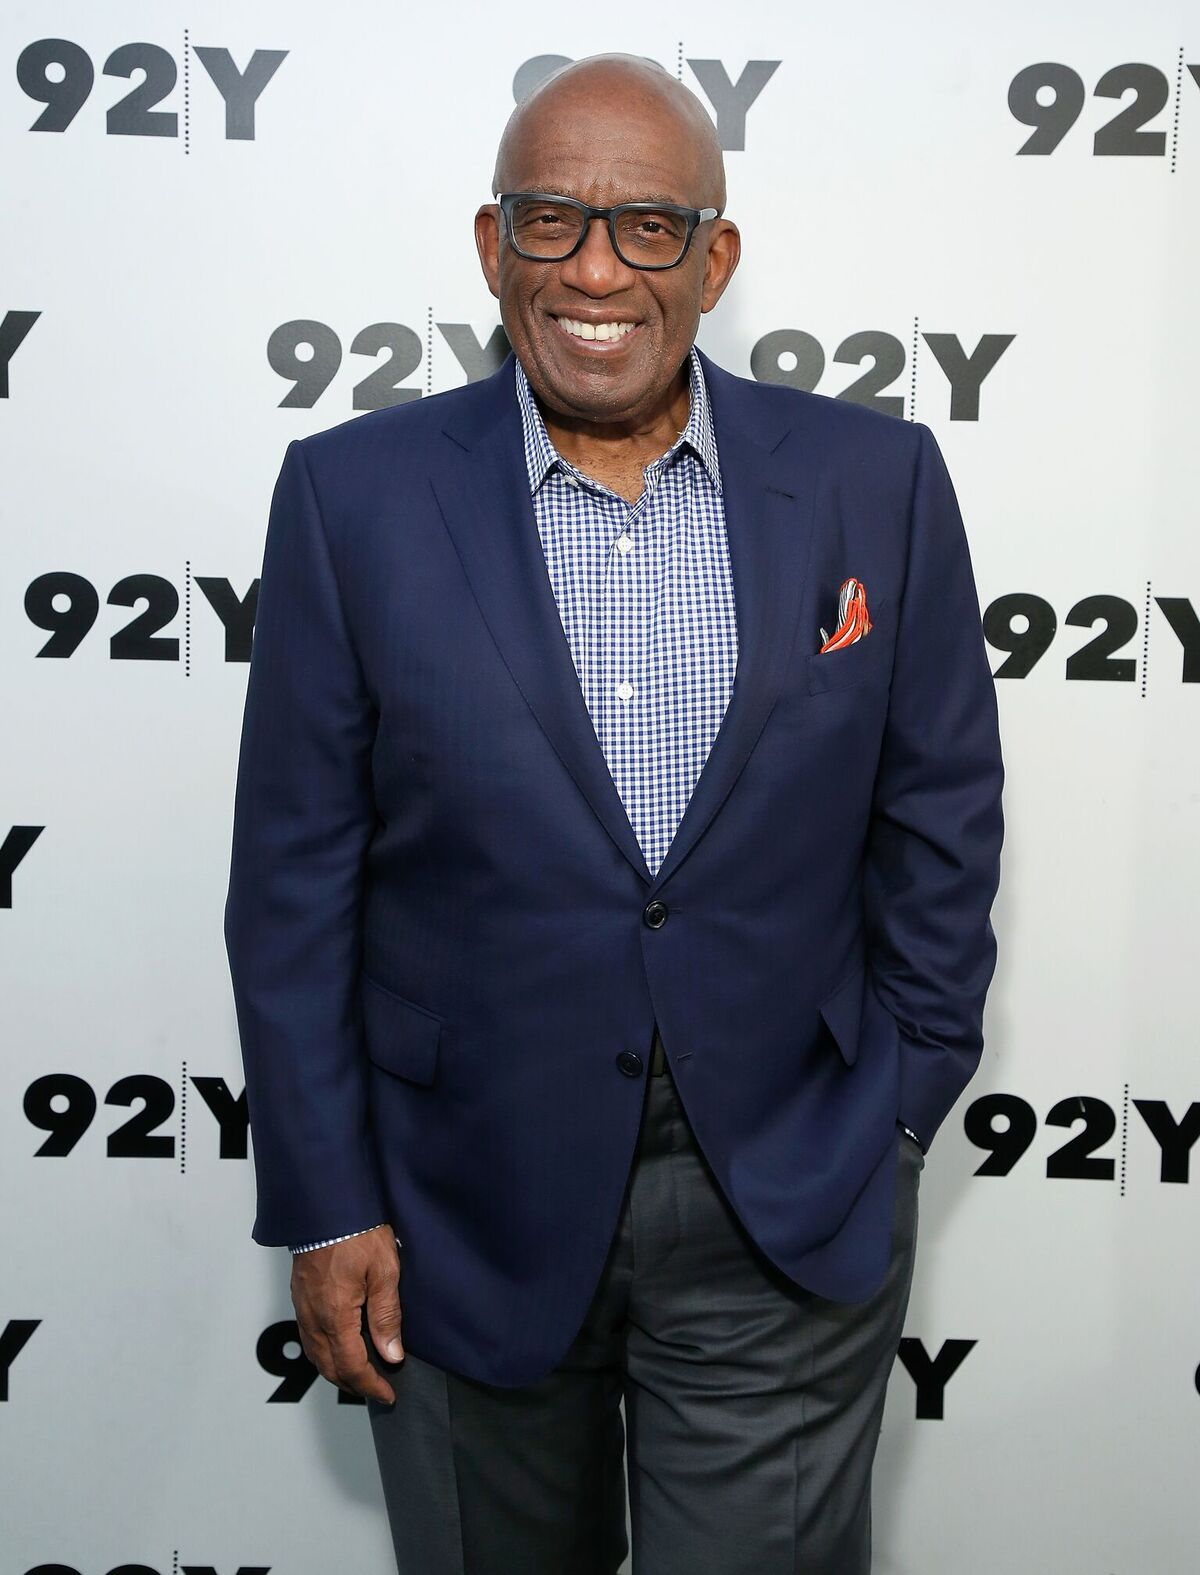 Al Roker attends an event featuring his conversation with Natalie Morales at 92nd Street Y on April 16, 2018. | Photo: Getty Images